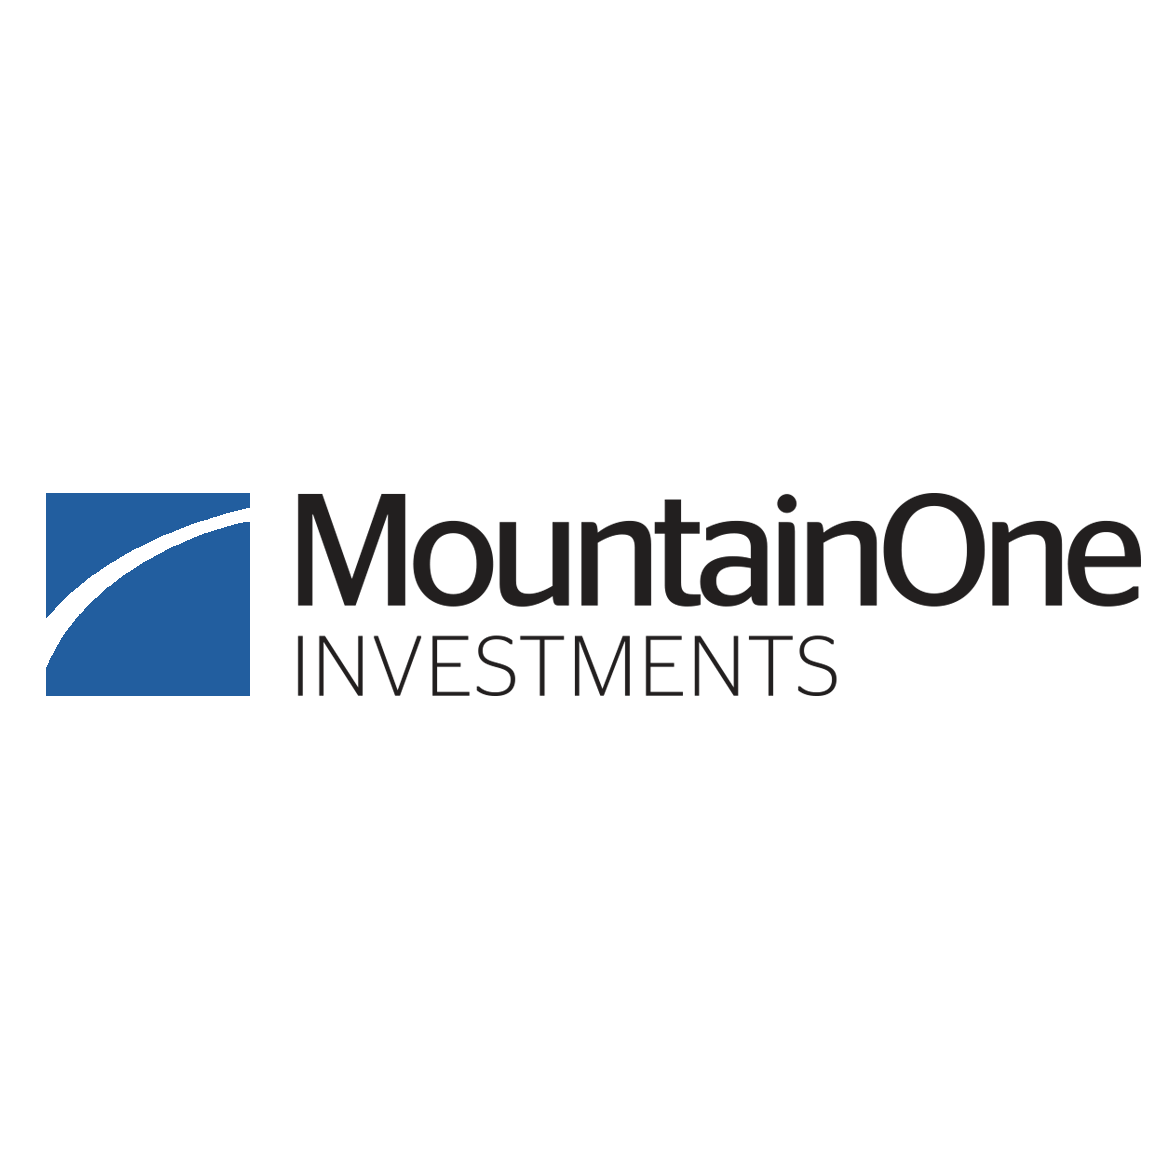 MountainOne Investments - Pittsfield, MA 01201 - (413)442-7296 | ShowMeLocal.com